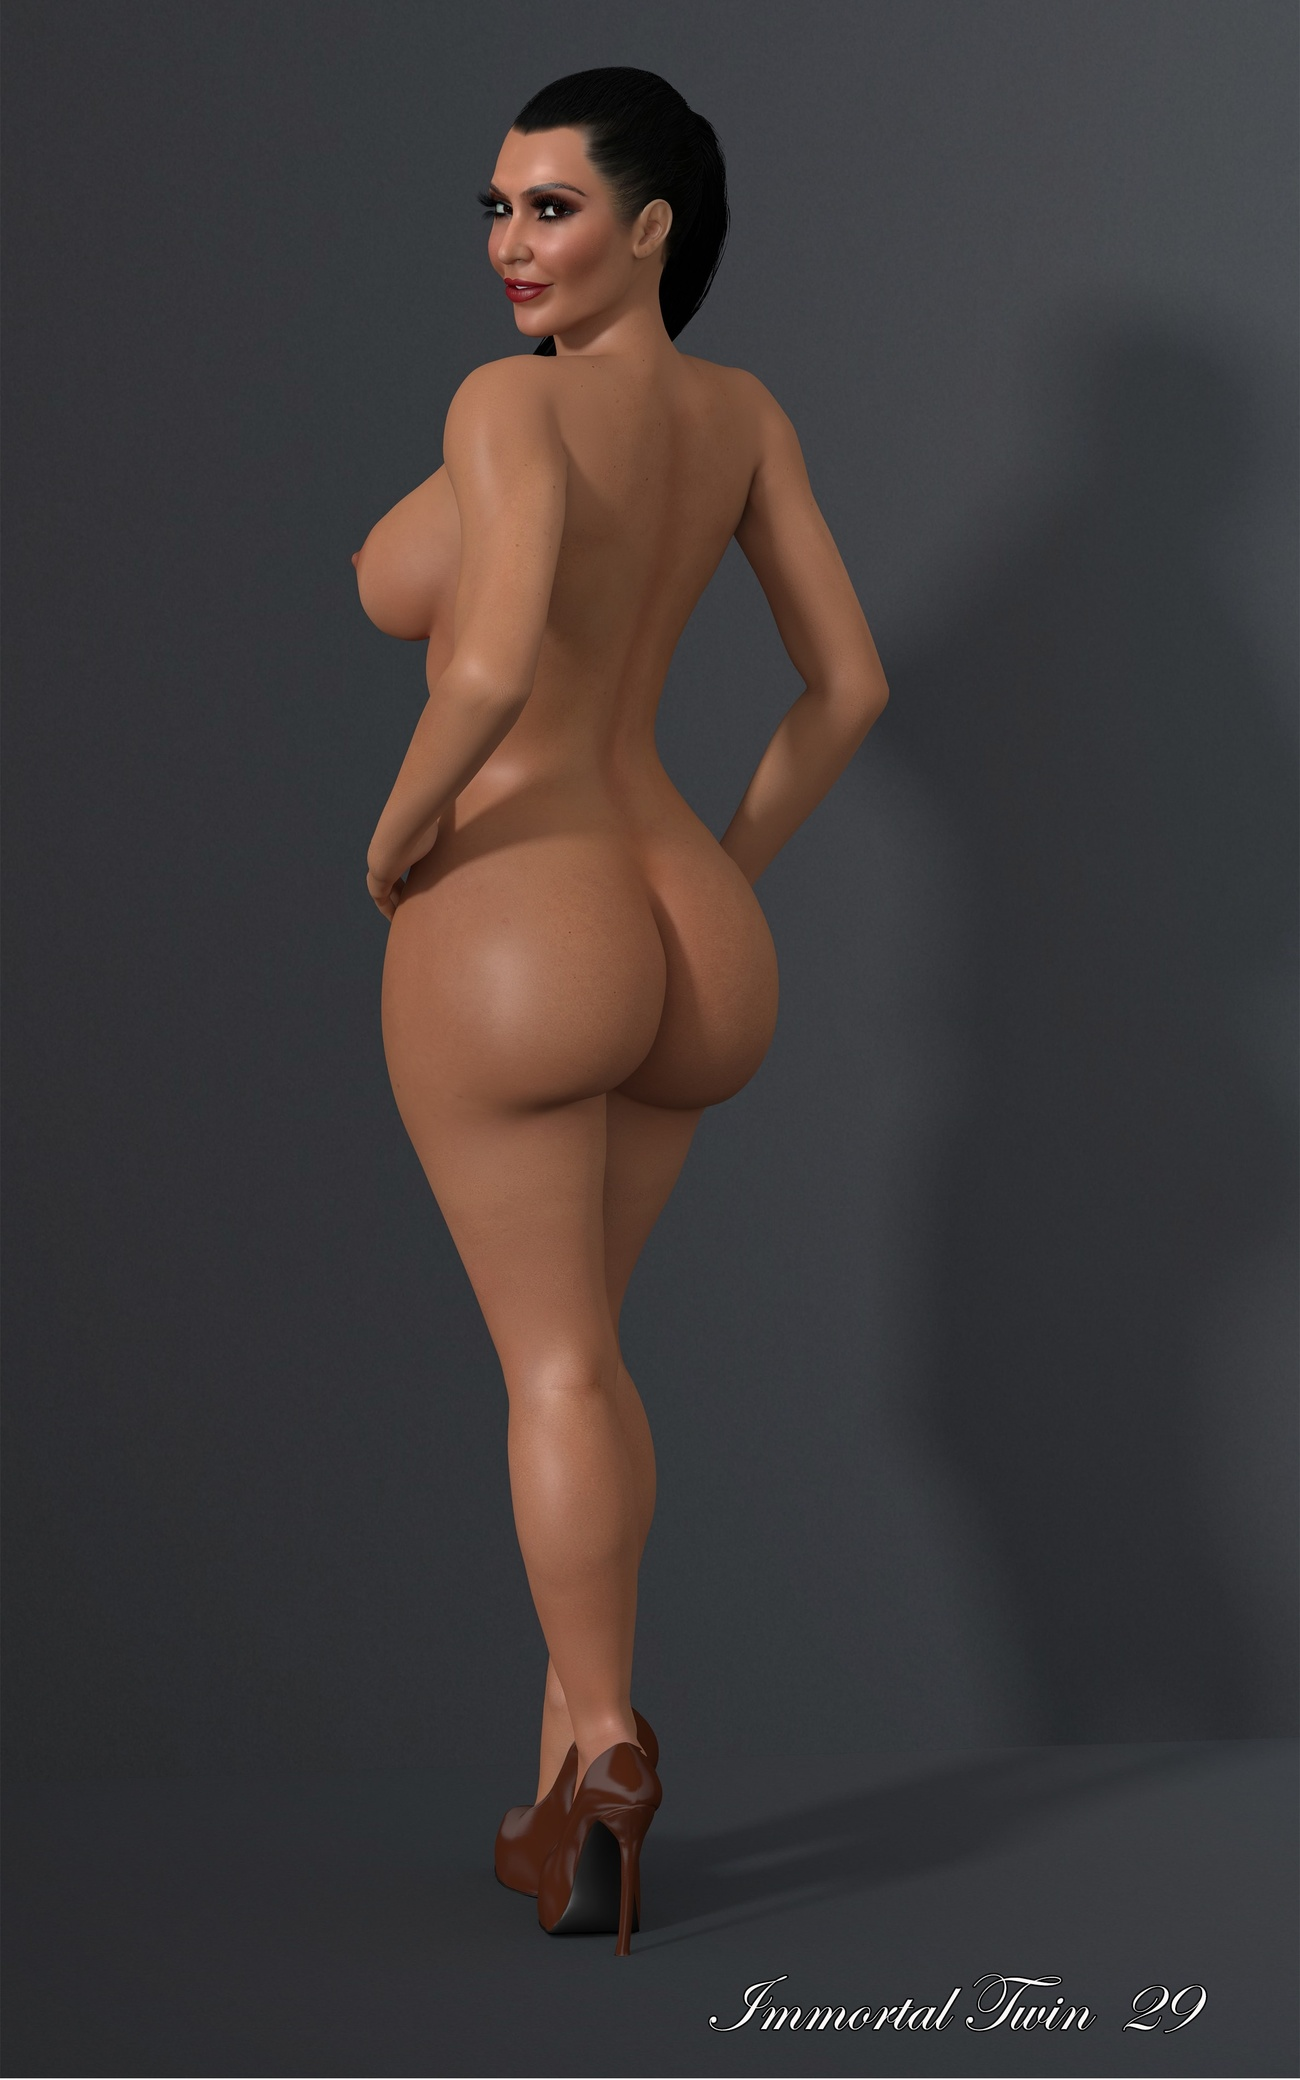 Daz 3d female models nude fucked galleries